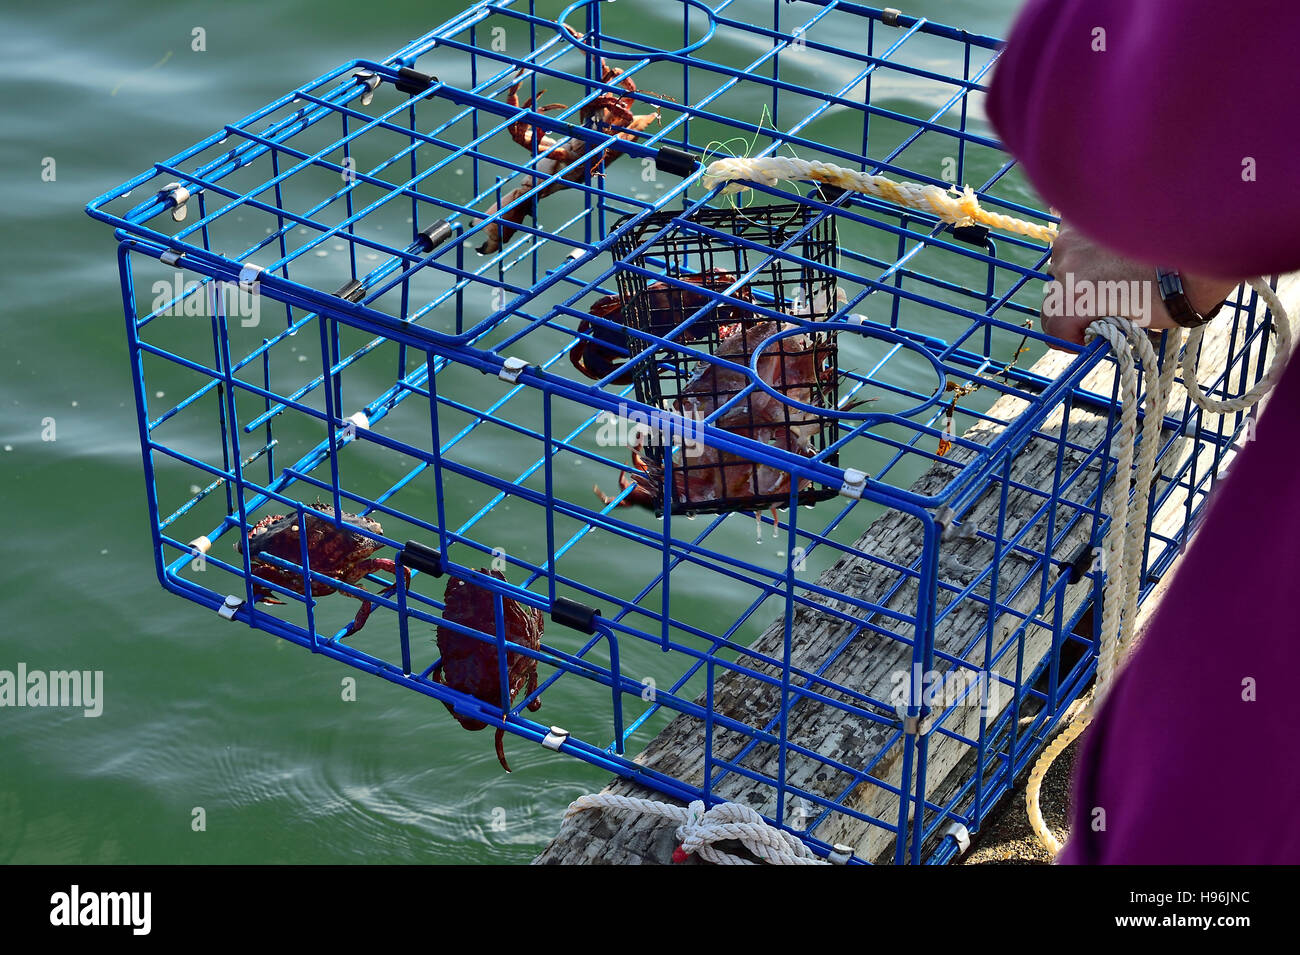 A close up of a metal crab trap with some red rock crabs inside - Stock Image